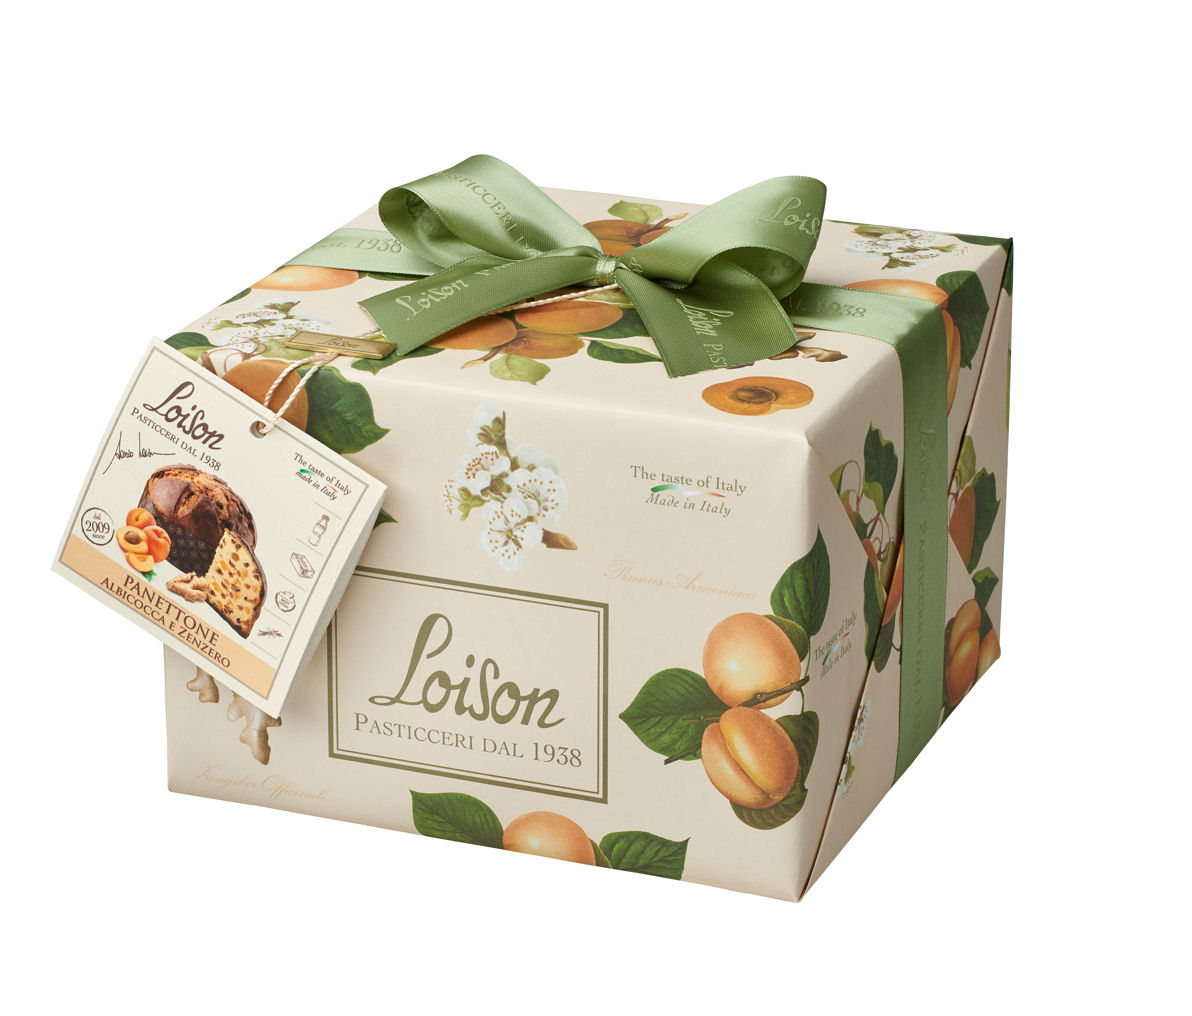 Loison Apricot Ginger Panettone 500g